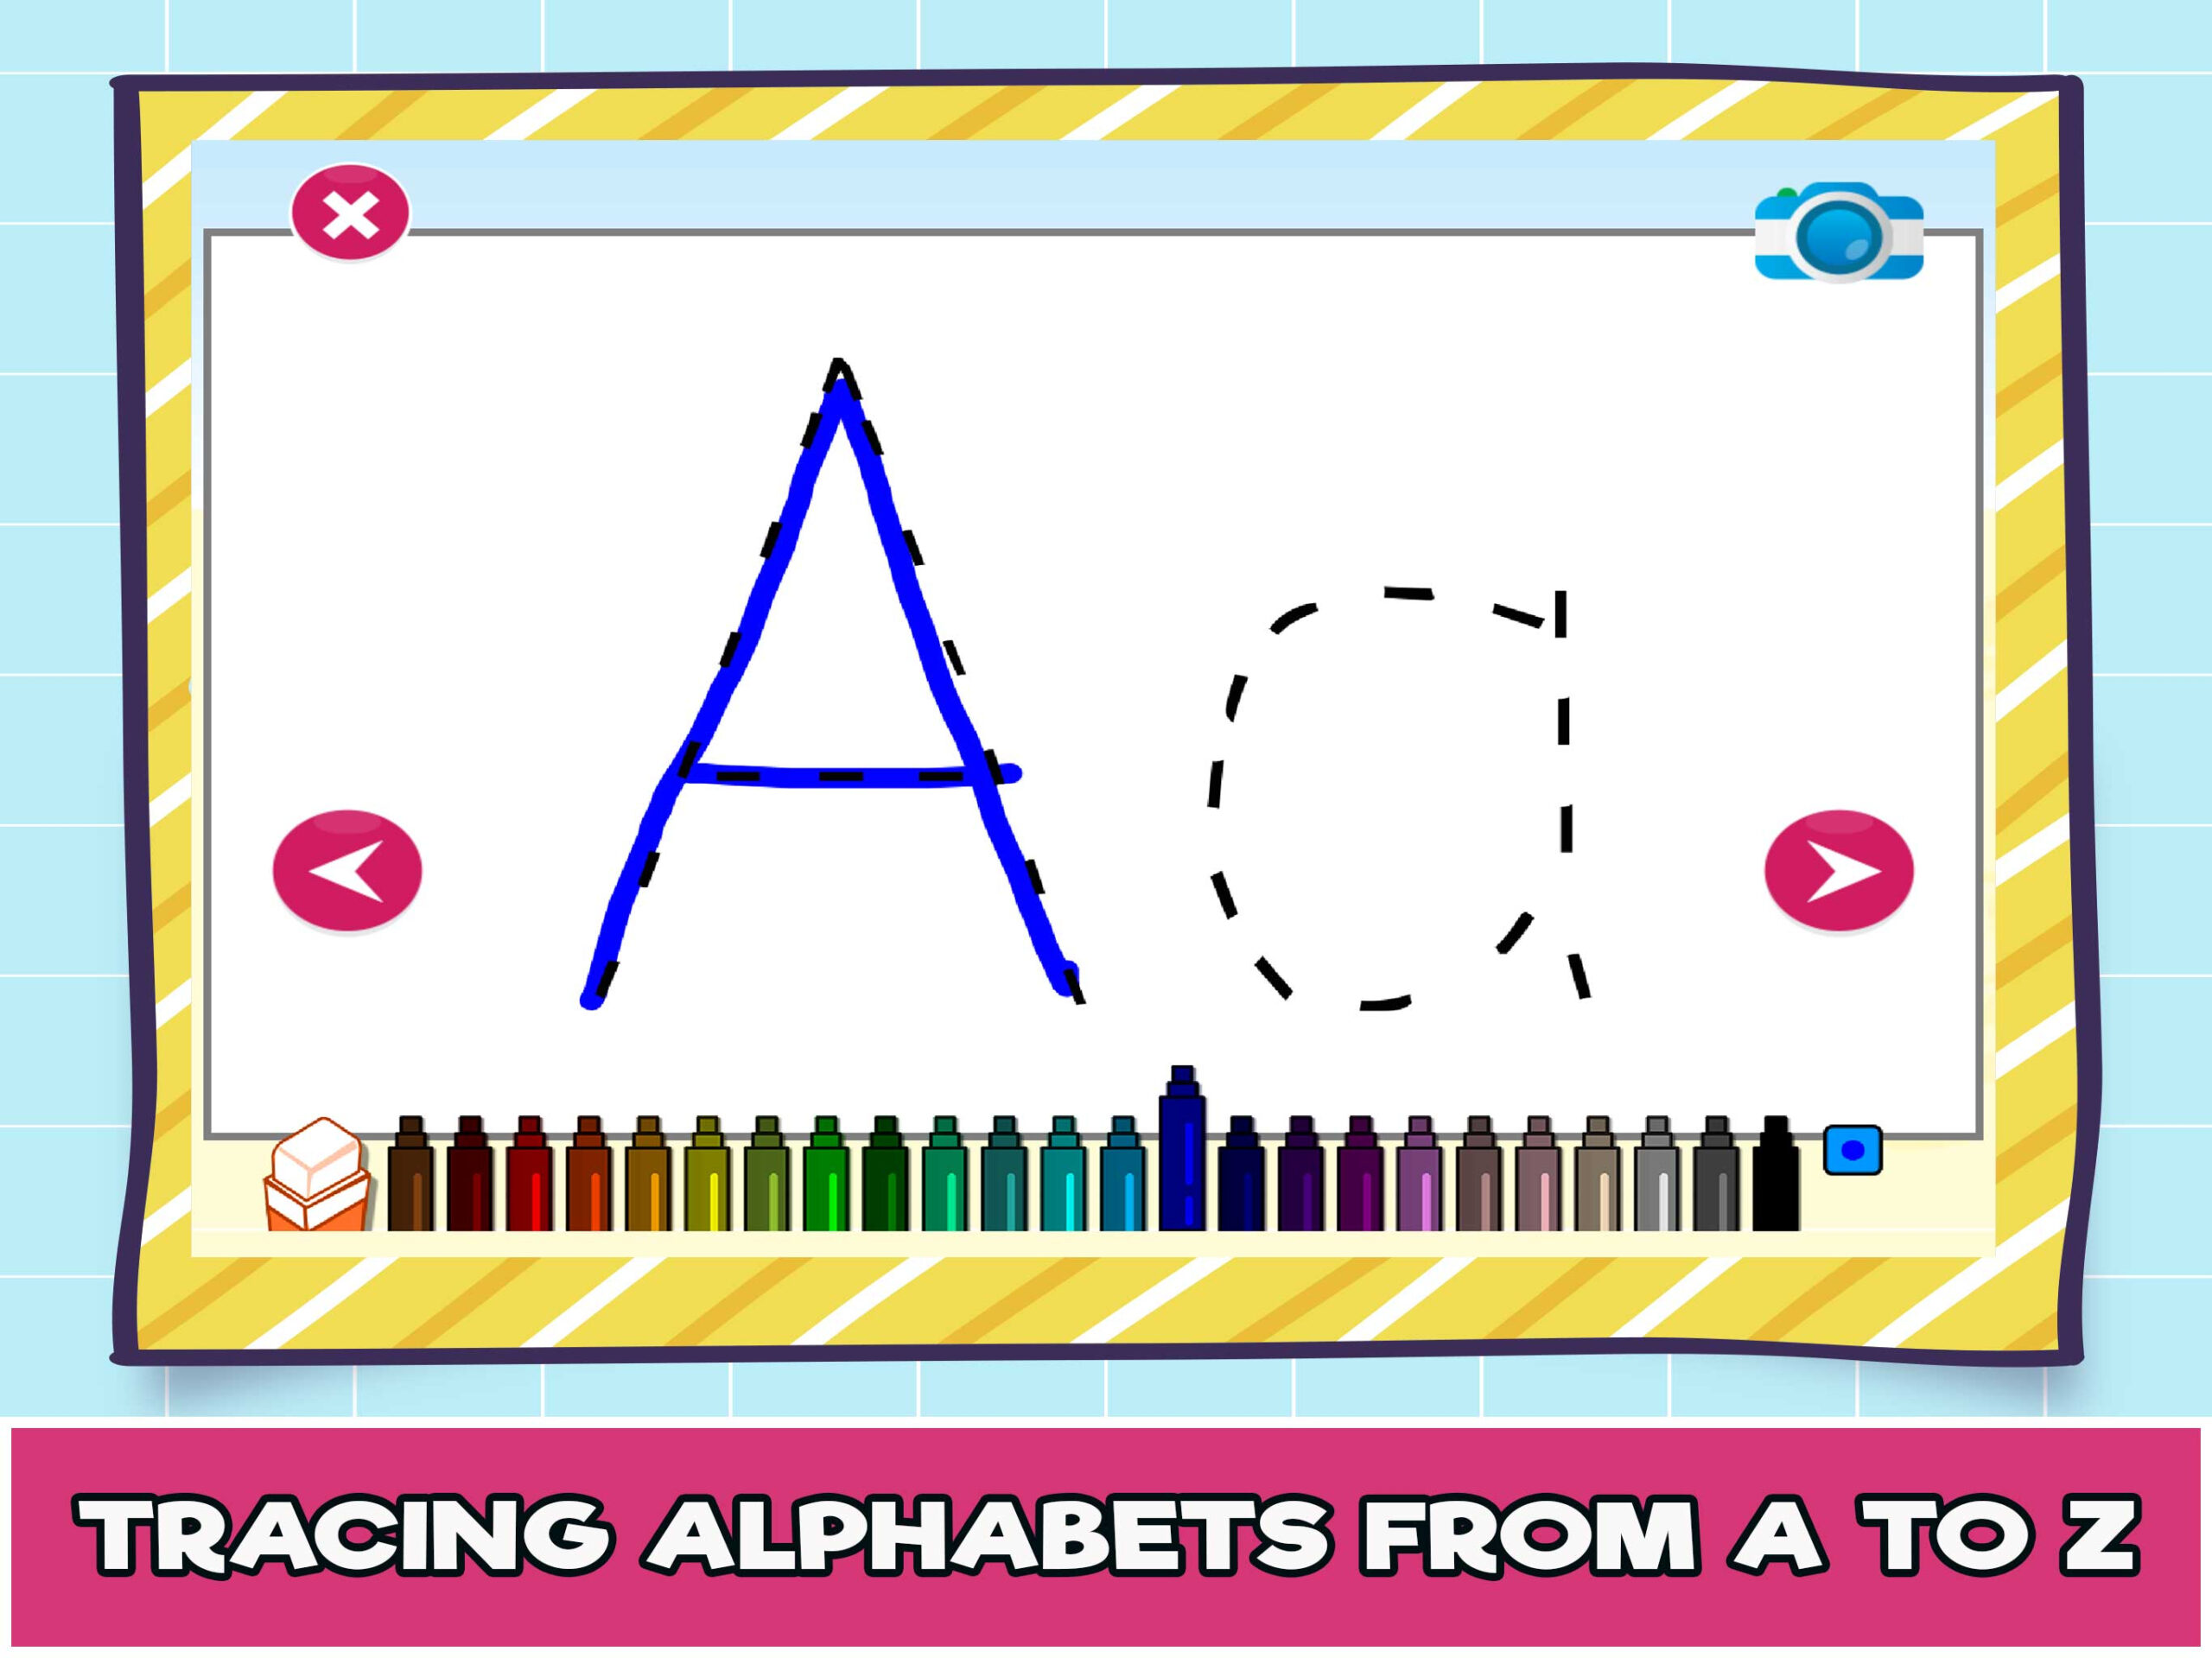 Free Online Alphabet Tracing Game For Kids - The Learning Apps intended for Abc Tracing Online